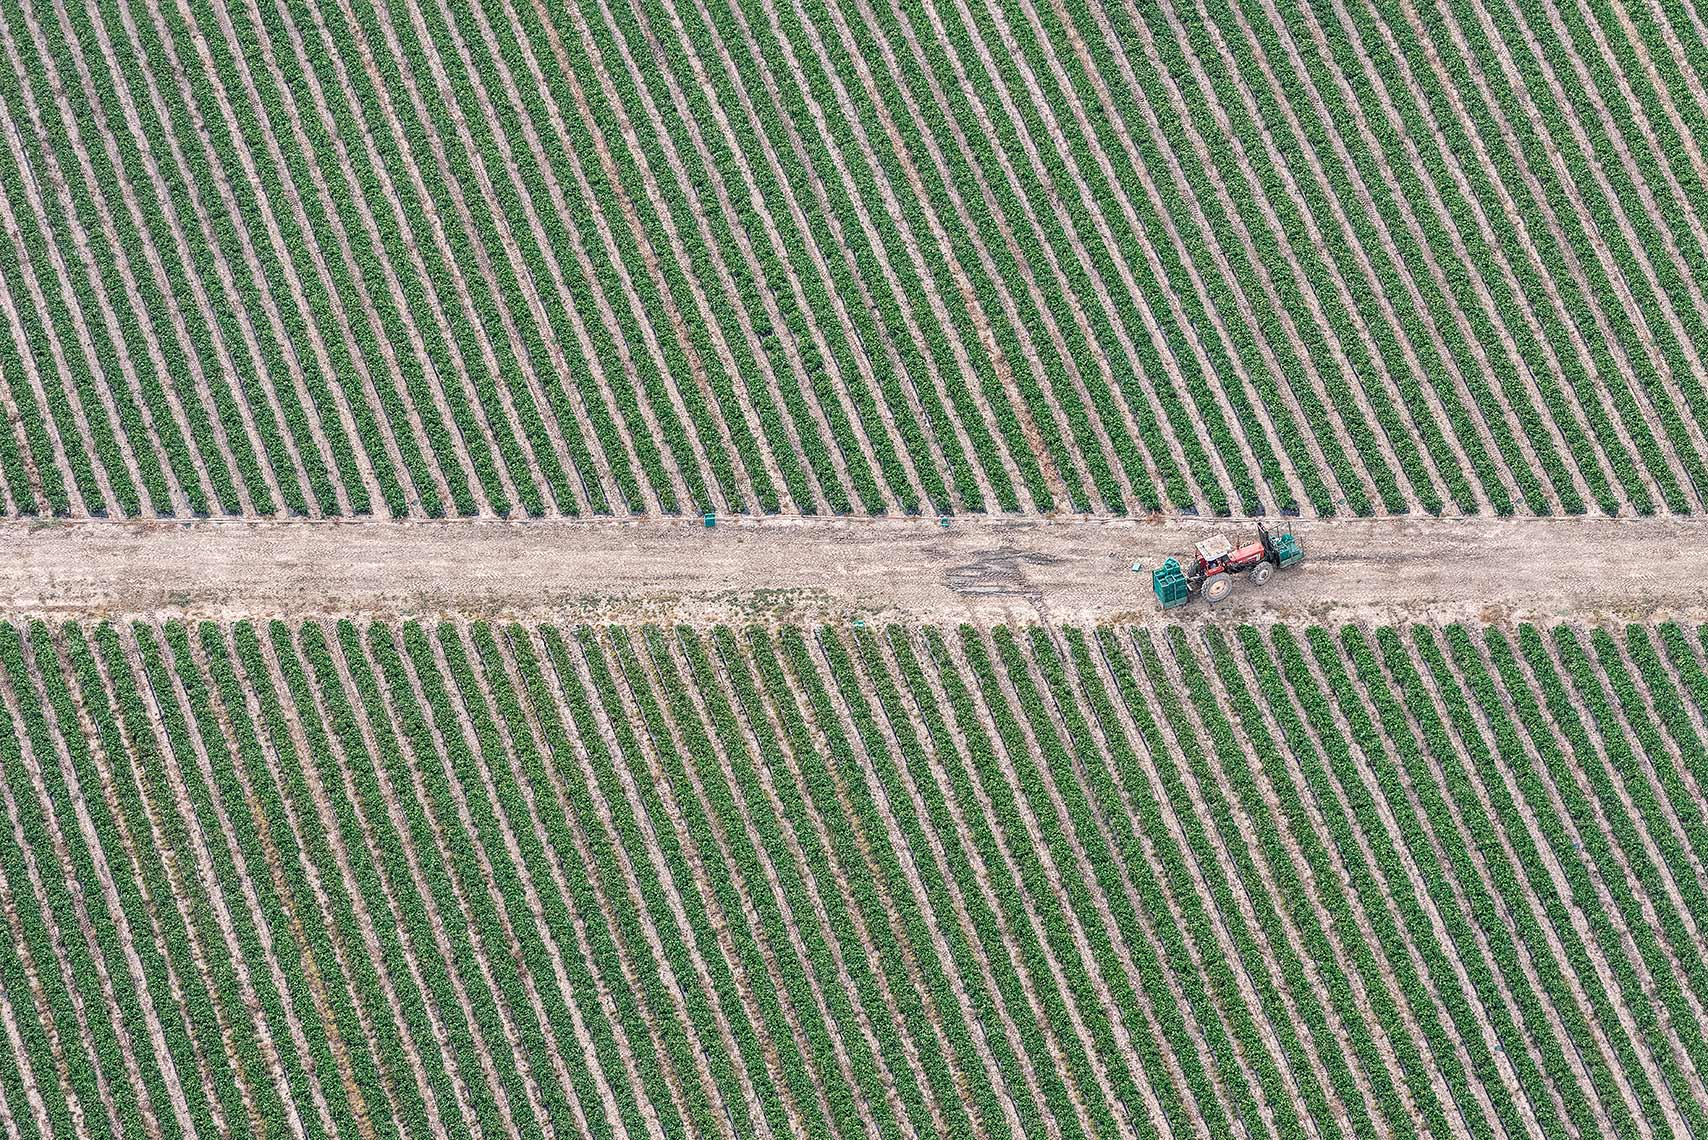 Zoe Wetherall / Aerial Landscape / Tractor